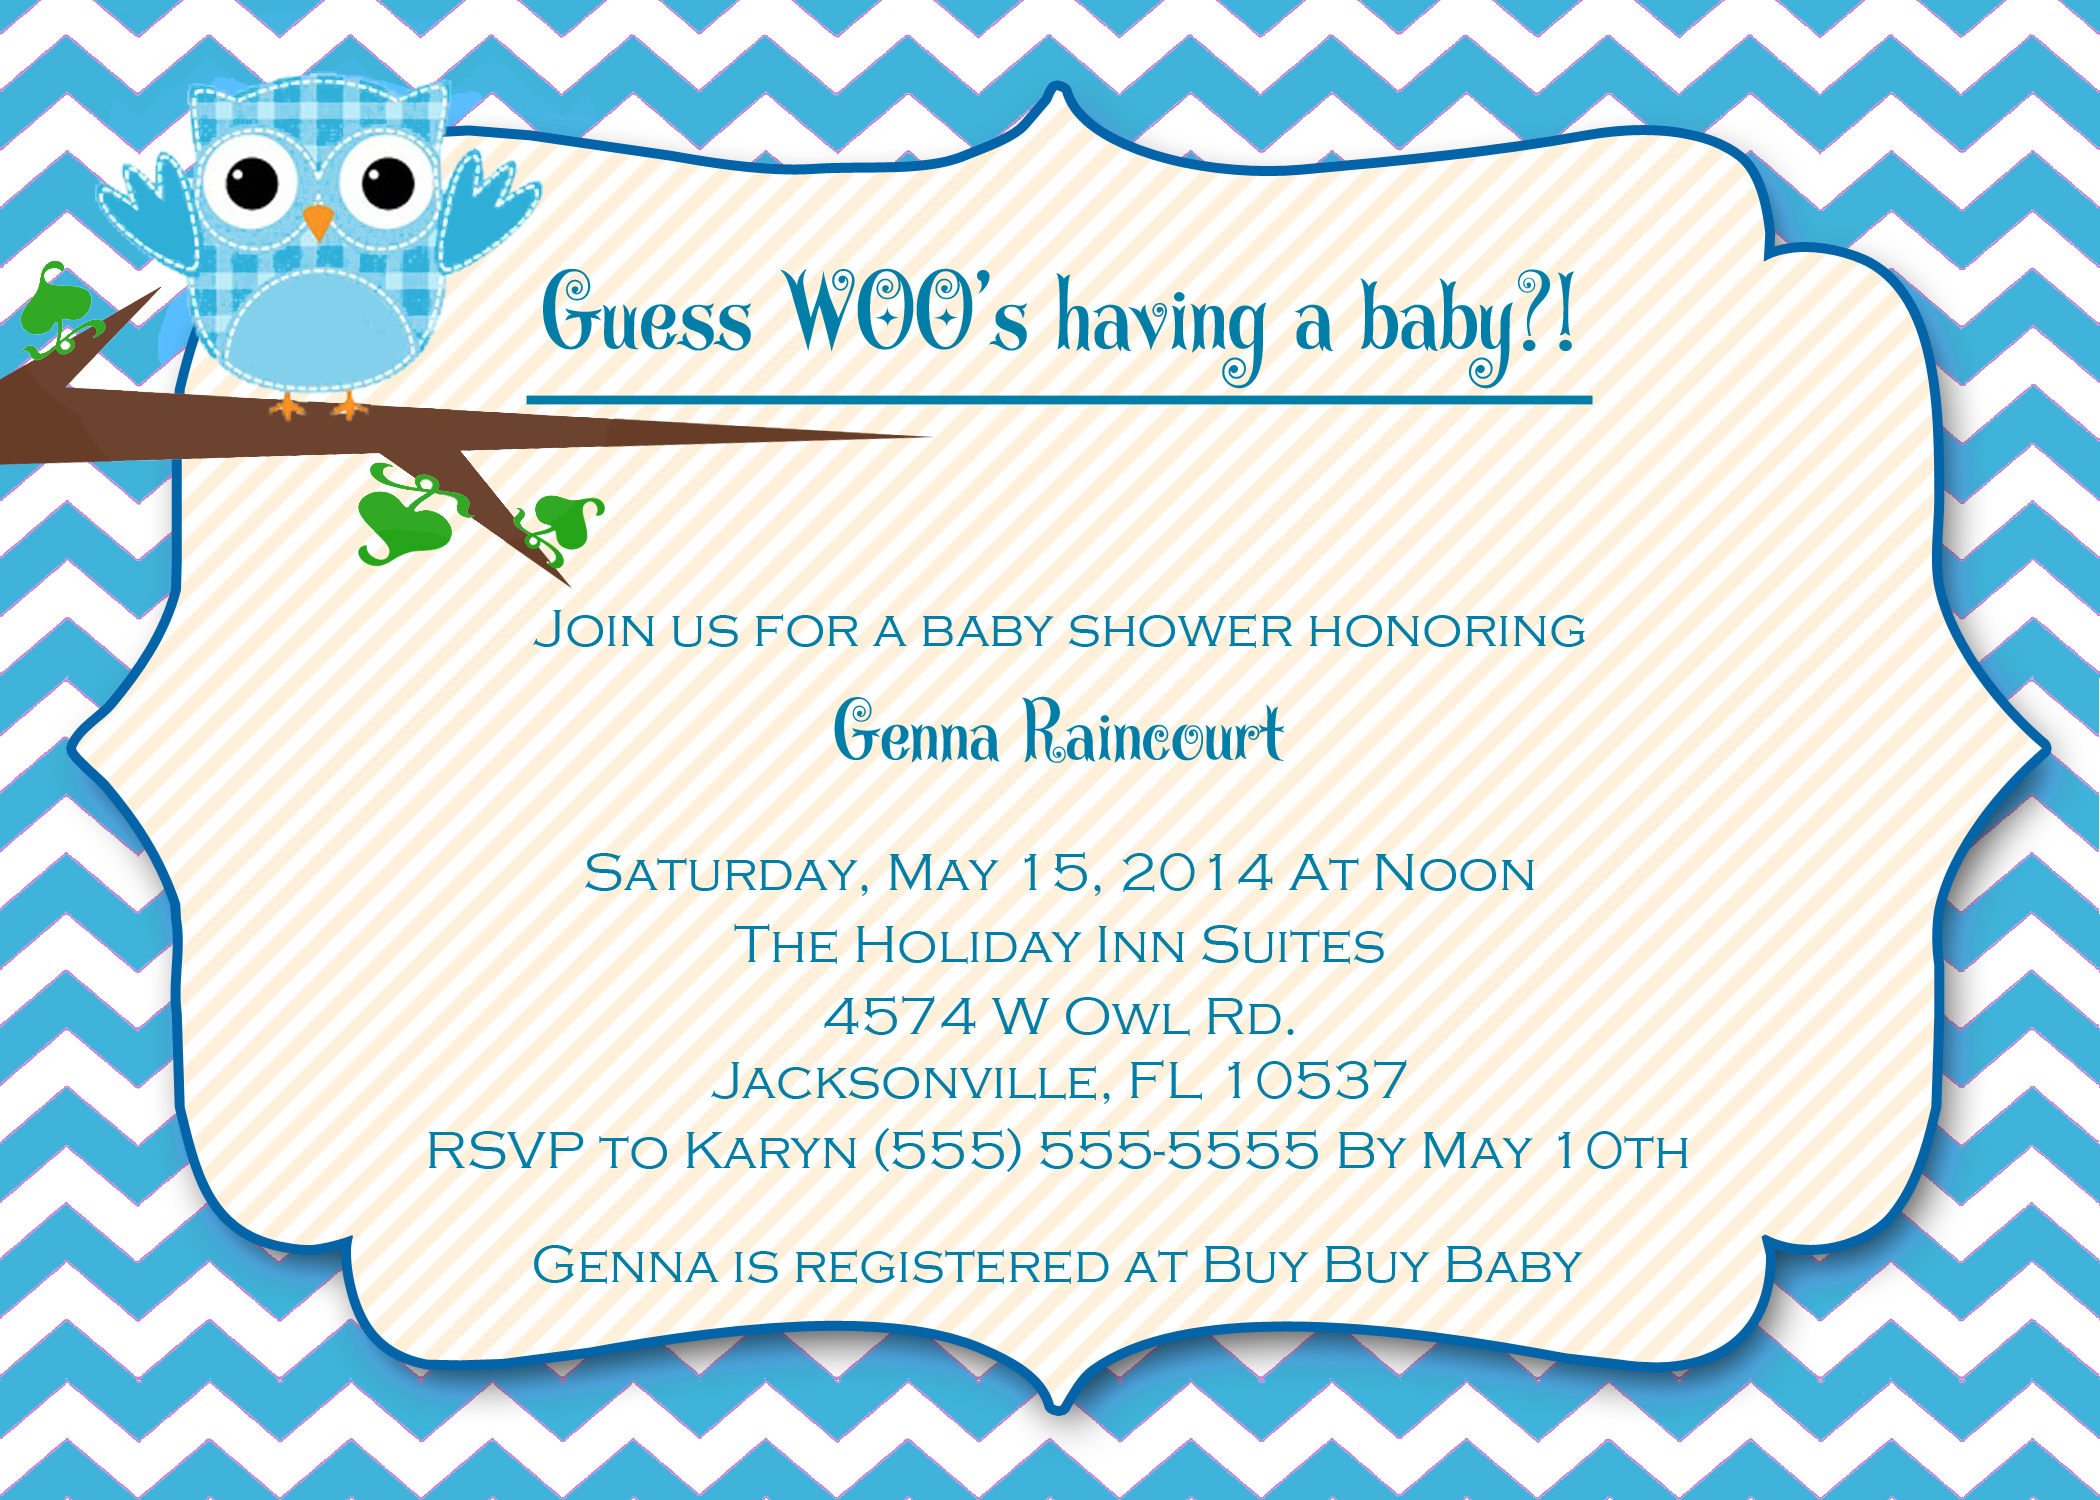 Funny Baby Shower Invitations 23 Background Funnypicture